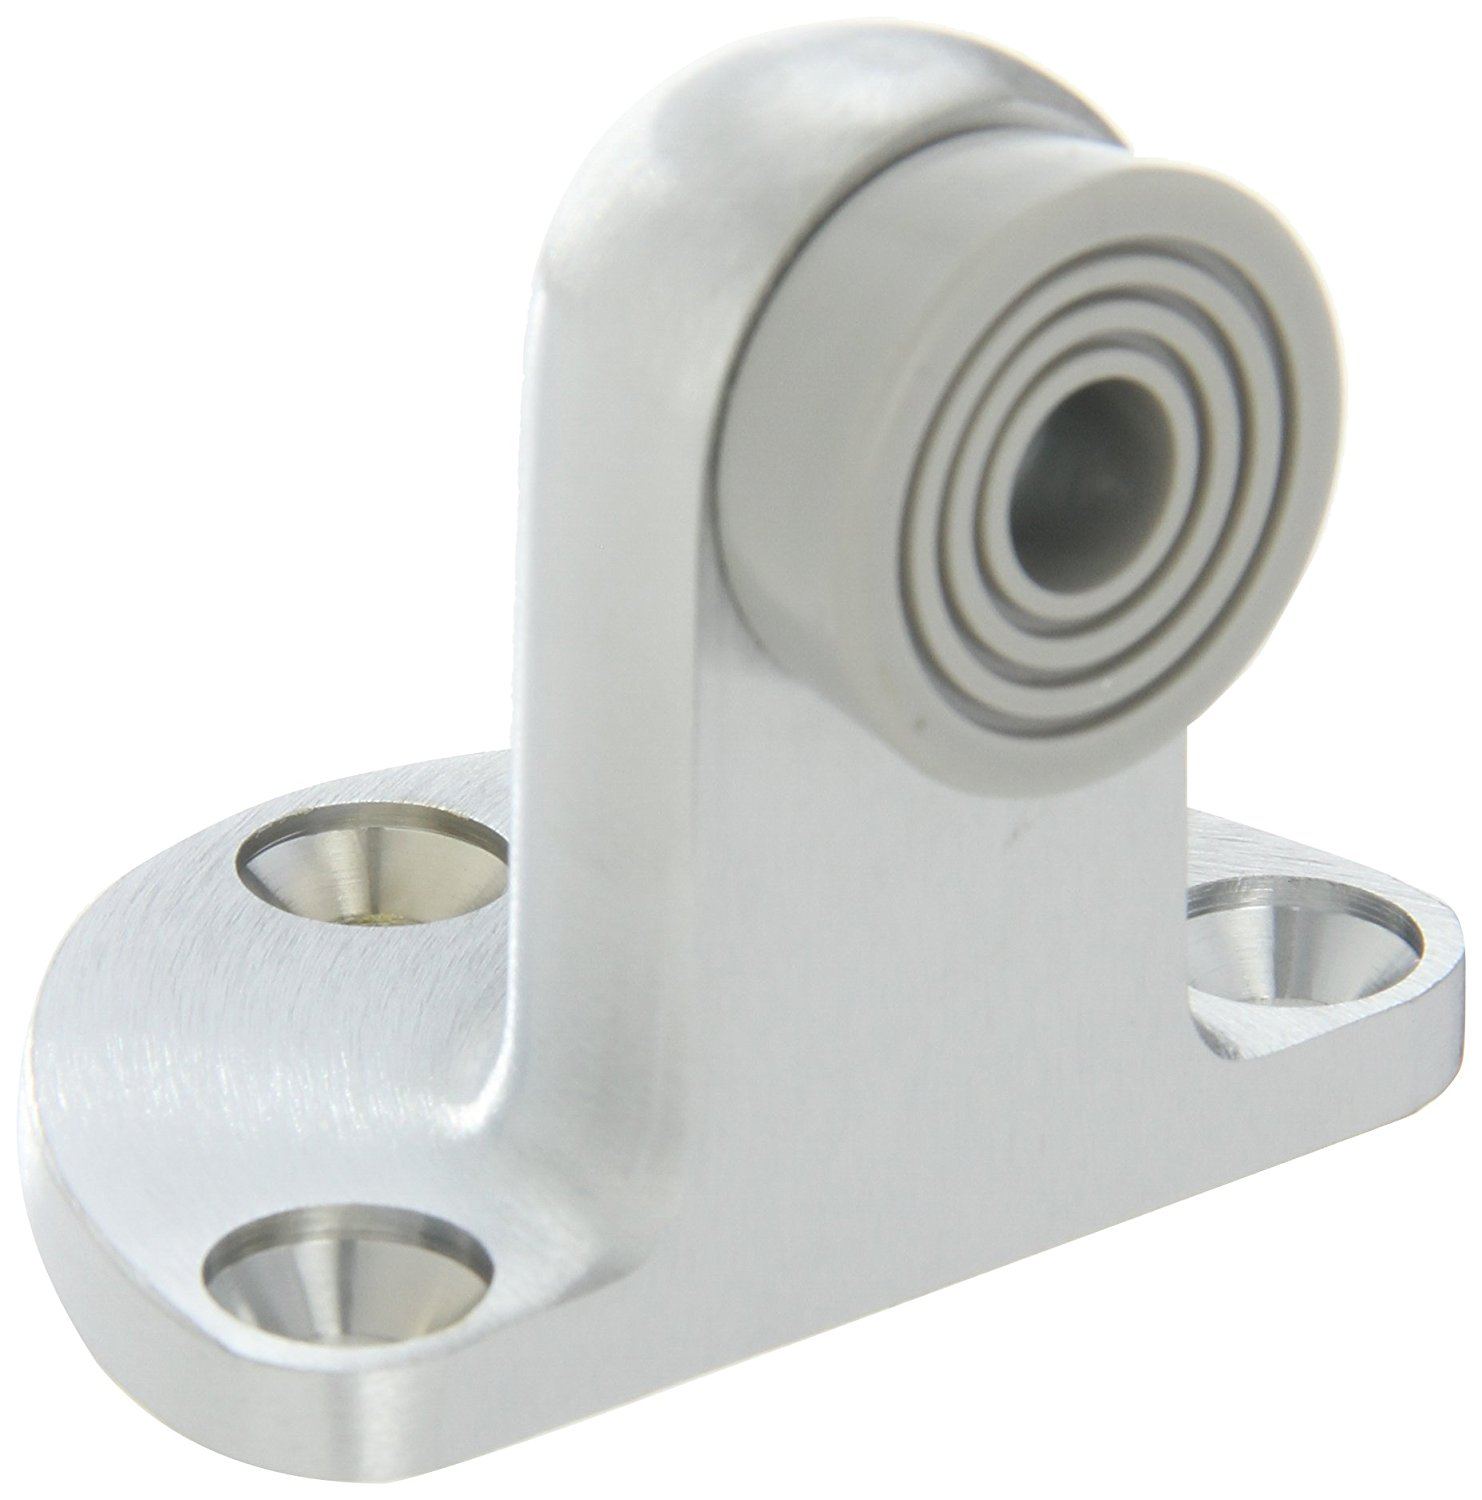 """Rockwood 480H.26D Brass Door Stop, 12 x 1-1/4"""" FH WS Fastener with Plastic Anchor, 2-1/2"""" Base Width x 1-3/4"""" Base Length, 2-1/4"""" Height, Satin Chrome Plated Finish"""